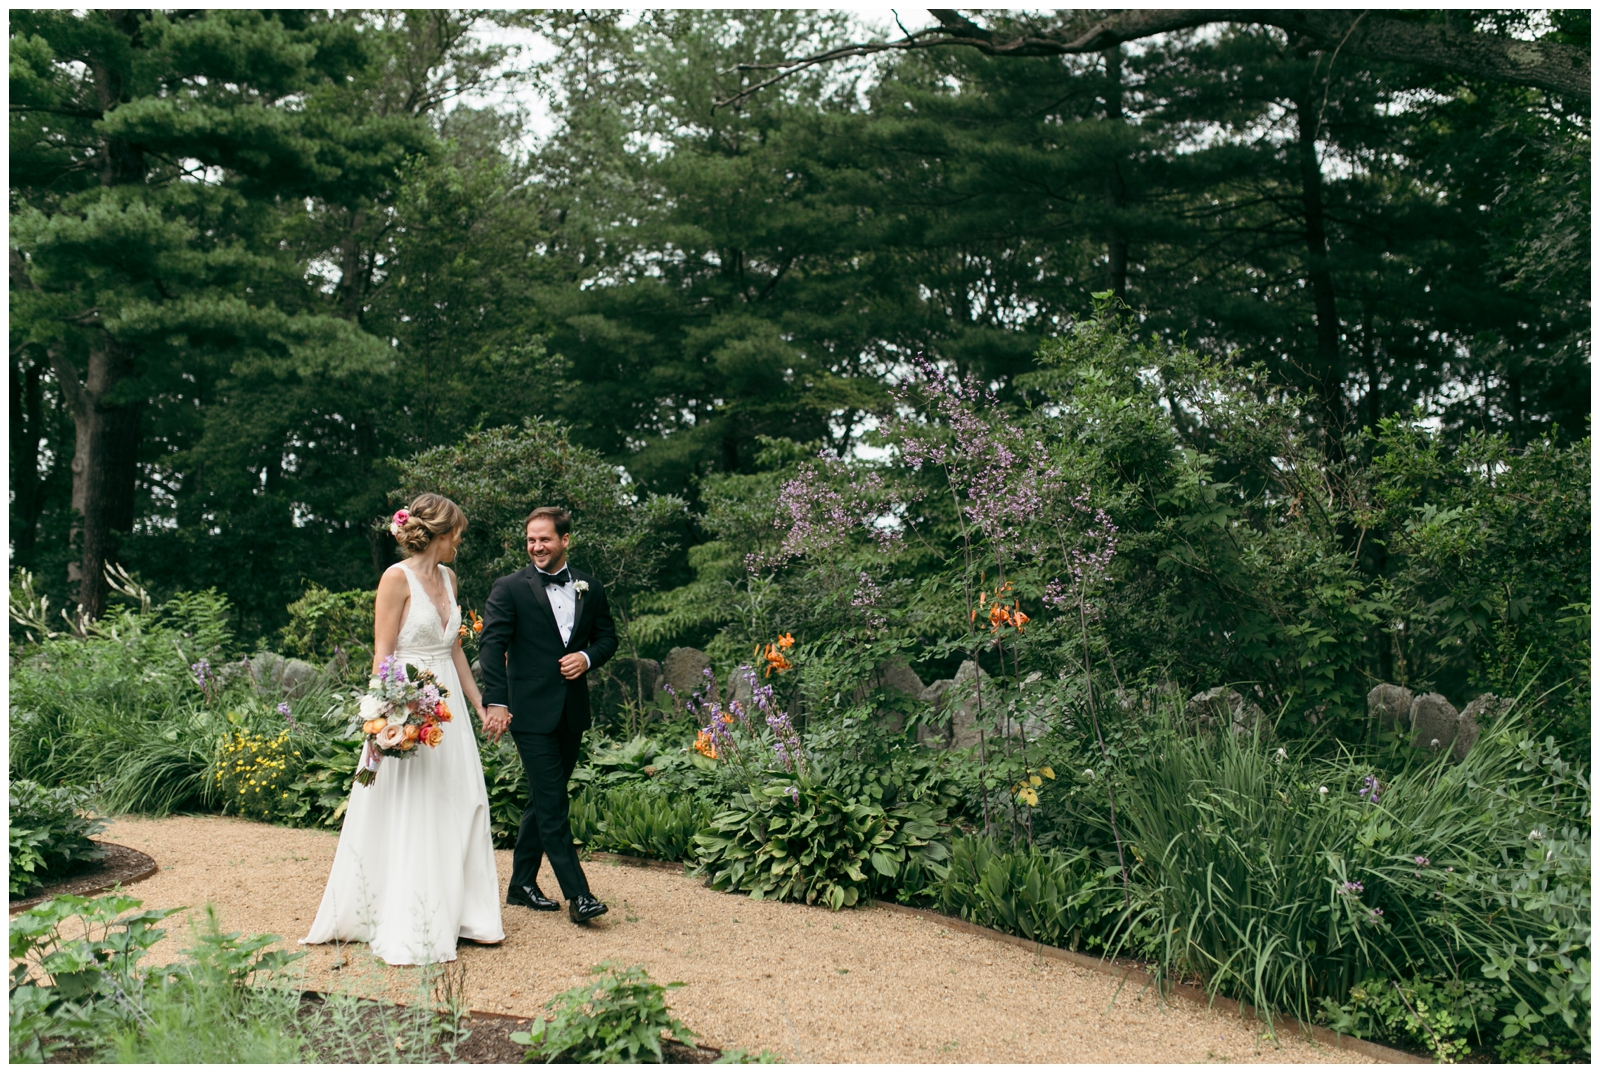 Moraine-Farm-wedding-Bailey-Q-Photo-Massachusetts-wedding-photpgrapher-023.jpg